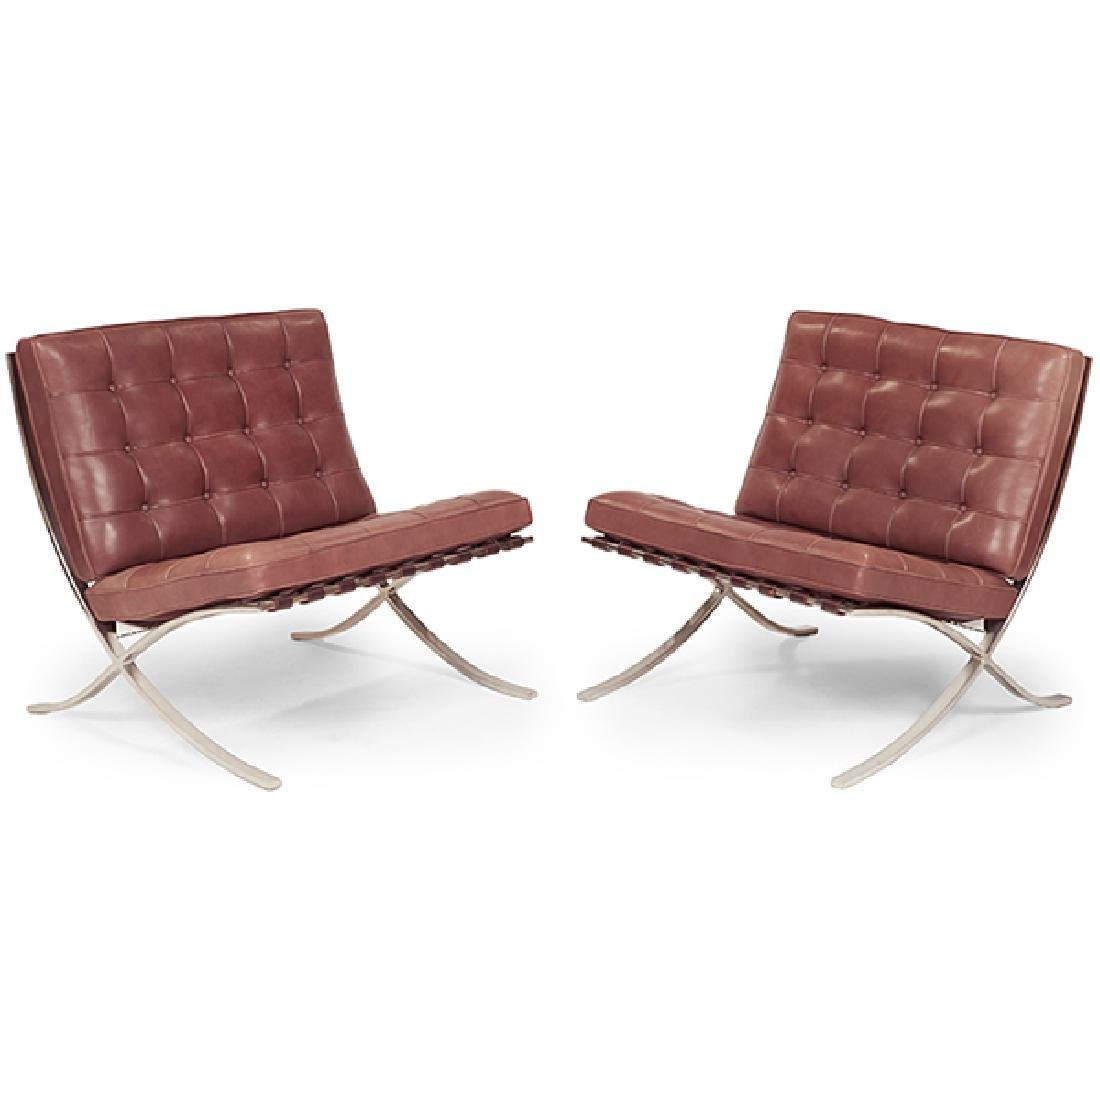 Mies van der Rohe (1886-1969) for Knoll International